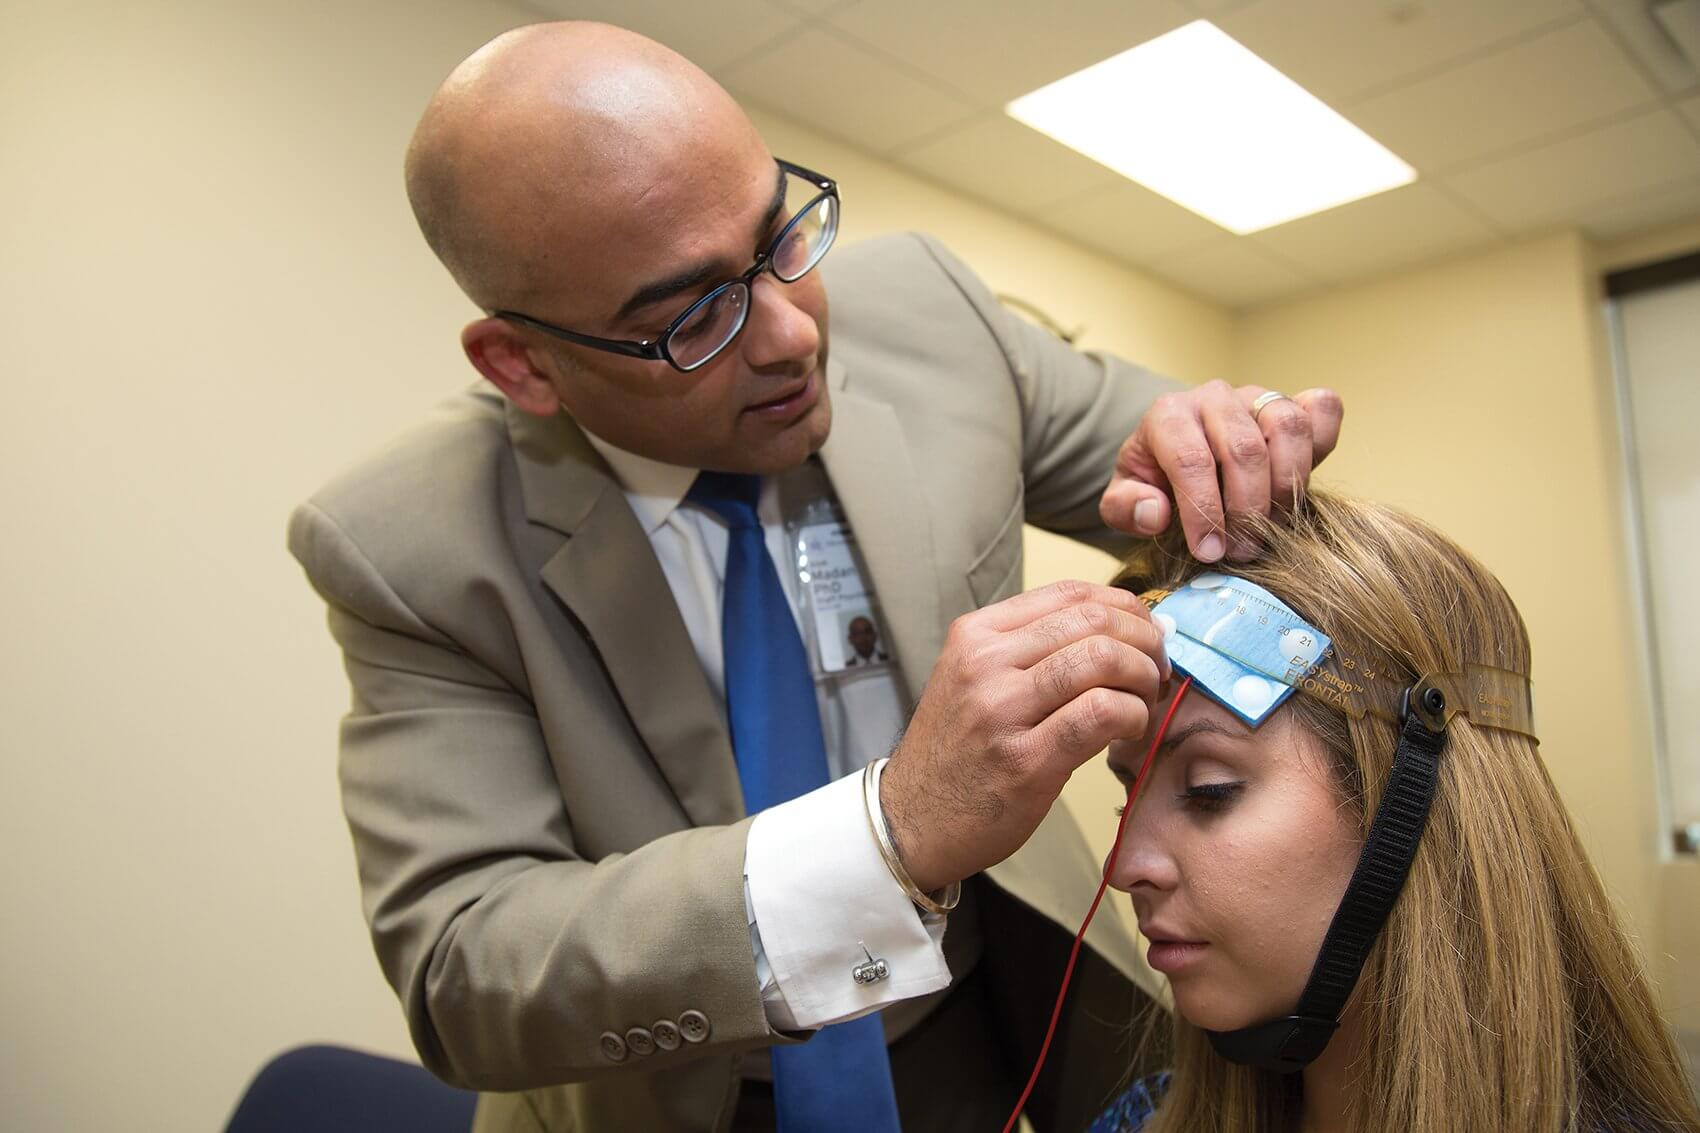 Madan demonstrates a transcranial direct current stimulation device, which is currently being tested in clinical trials for patient use and has been shown to effectively treat chronic pain, depression and anxiety.